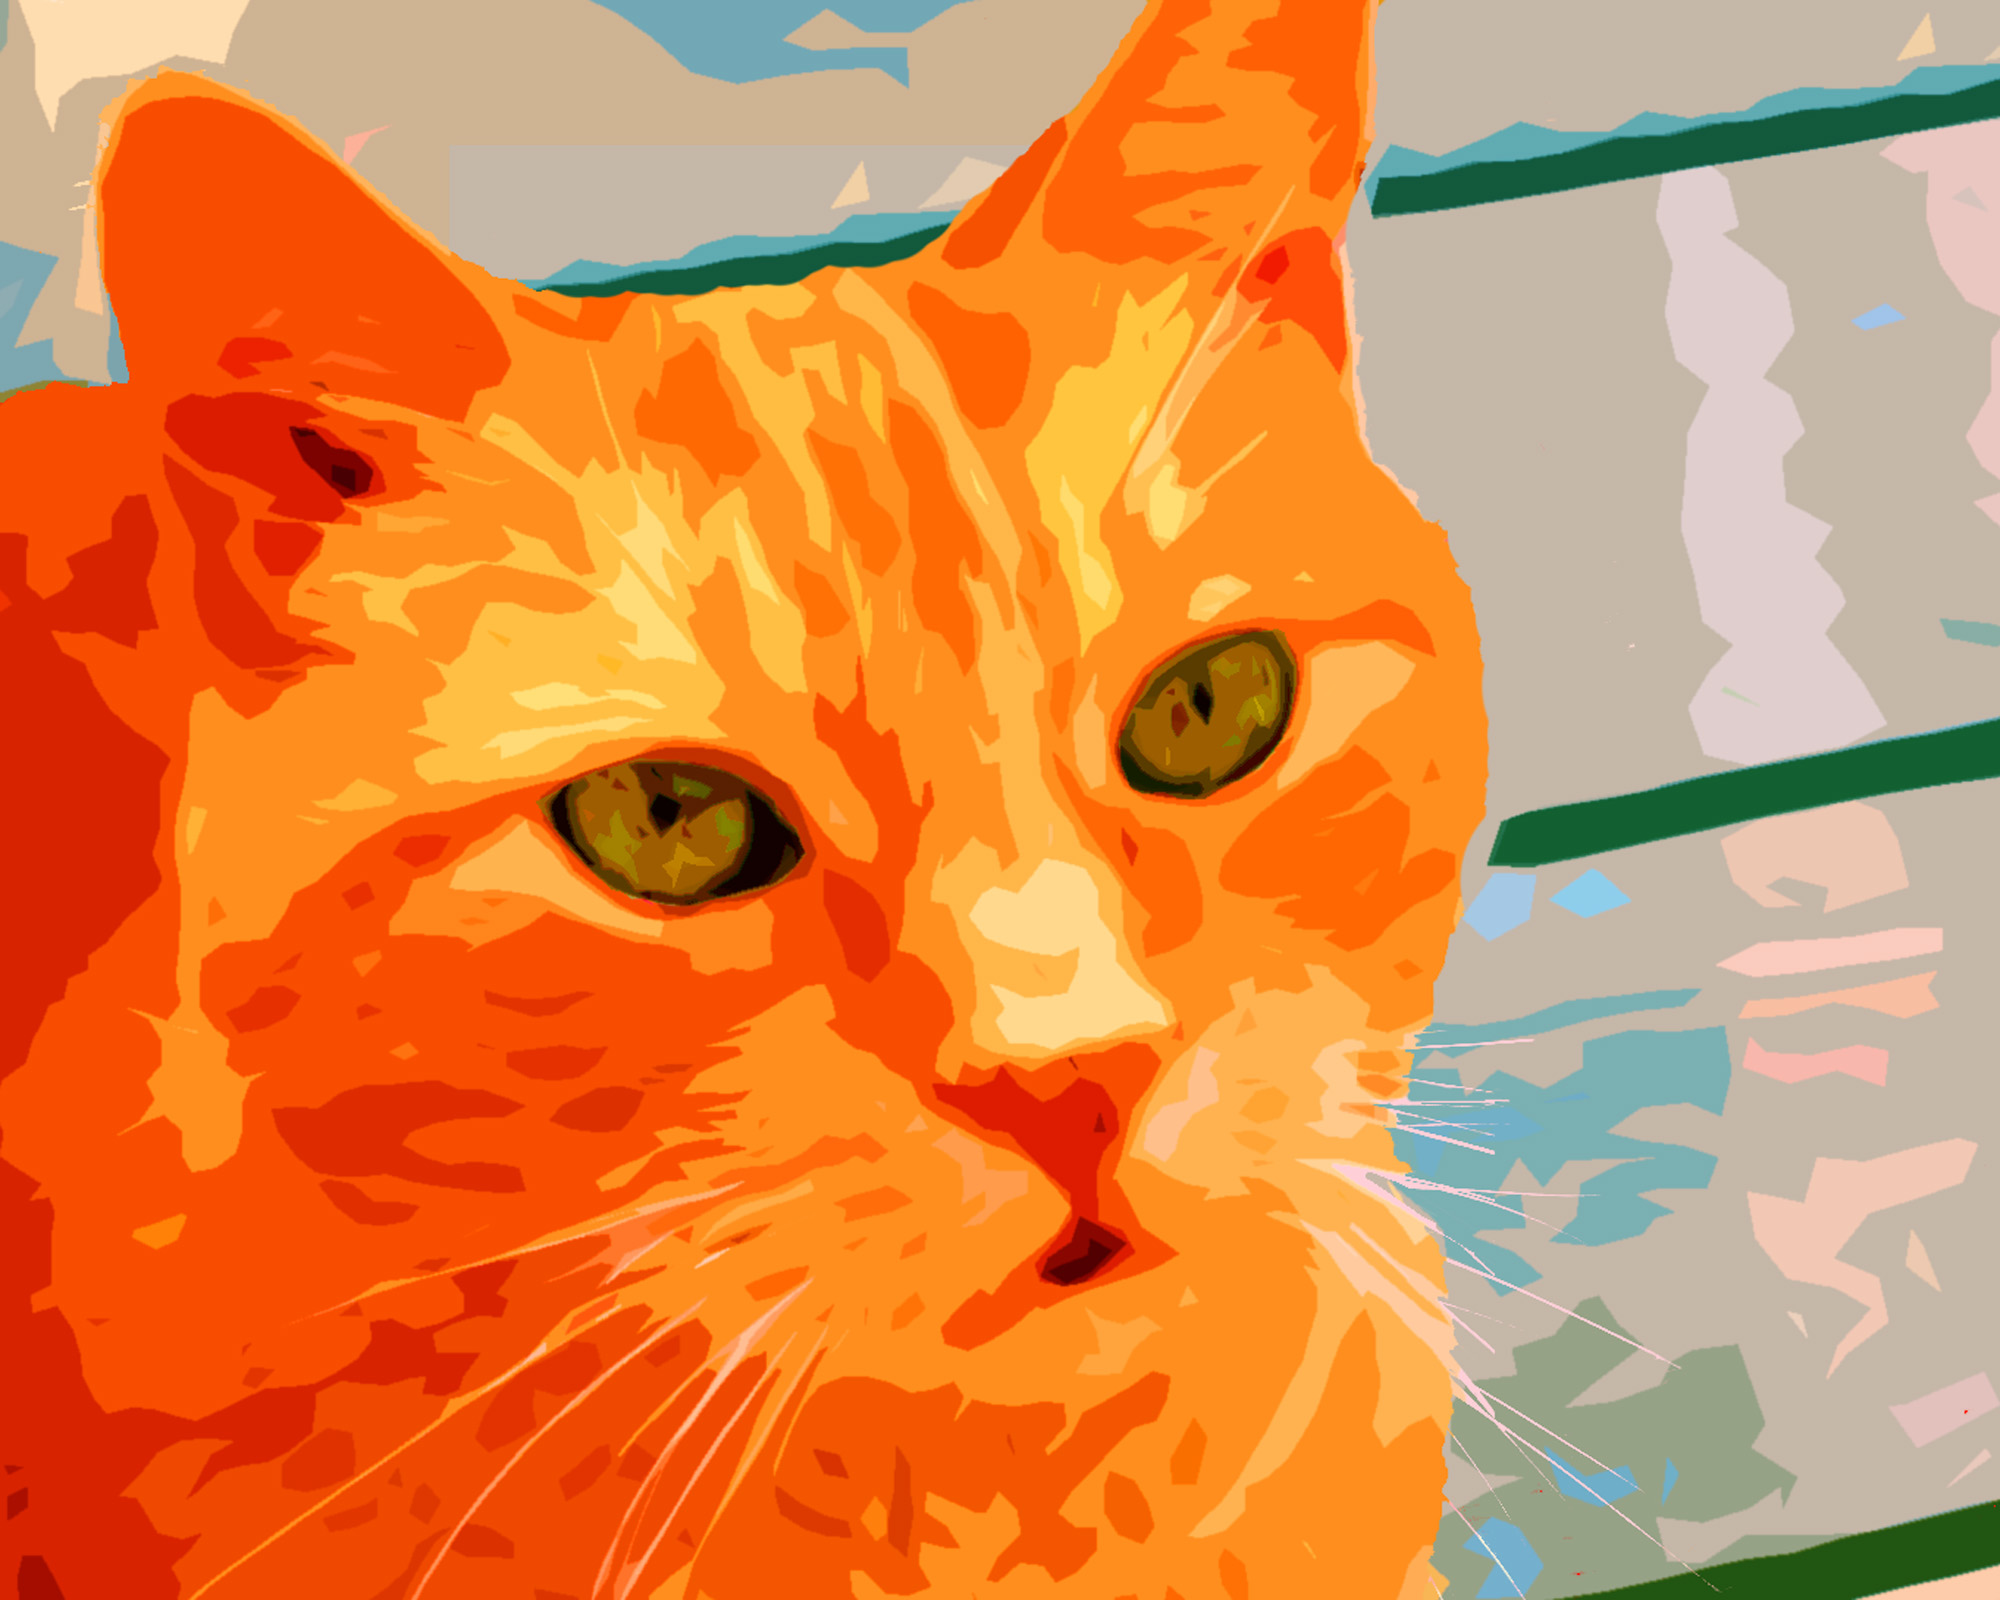 Orange Tabby Cat Custom Digital Fine Art Pet Portrait by Animal Artist BZTAT